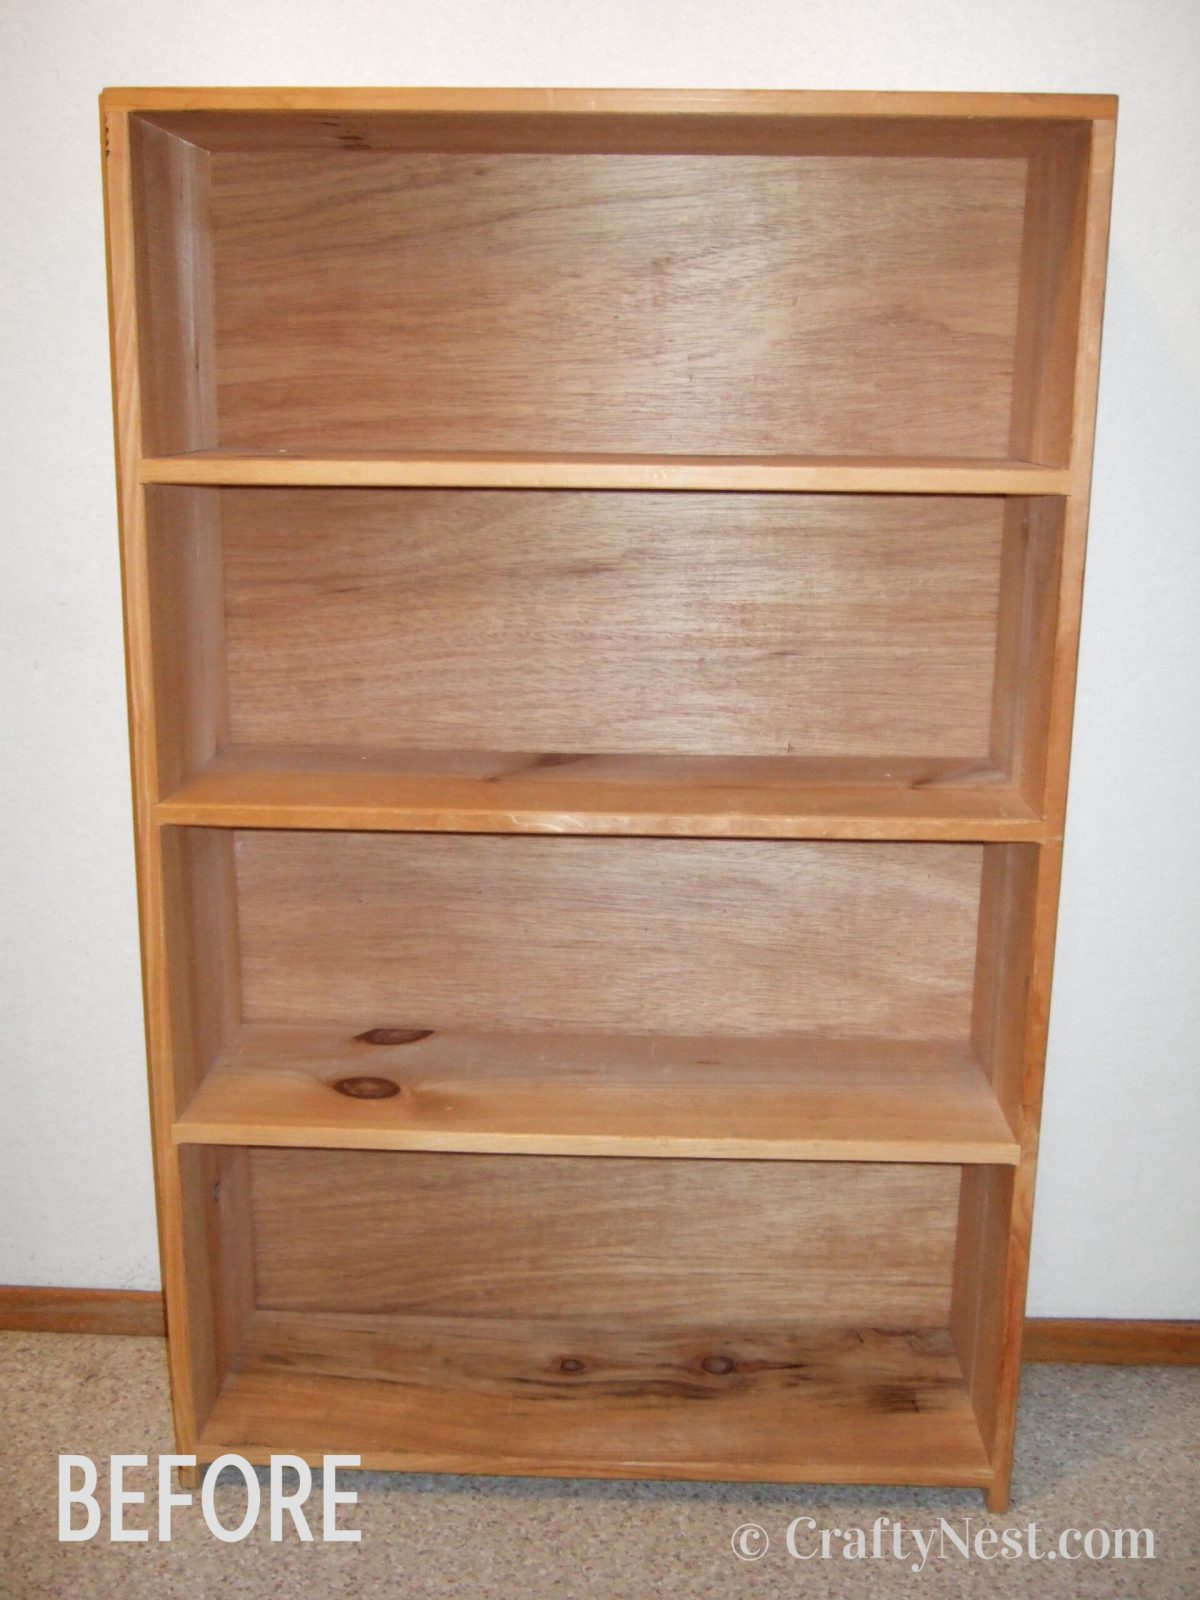 Plain bookshelf before the makeover, photo